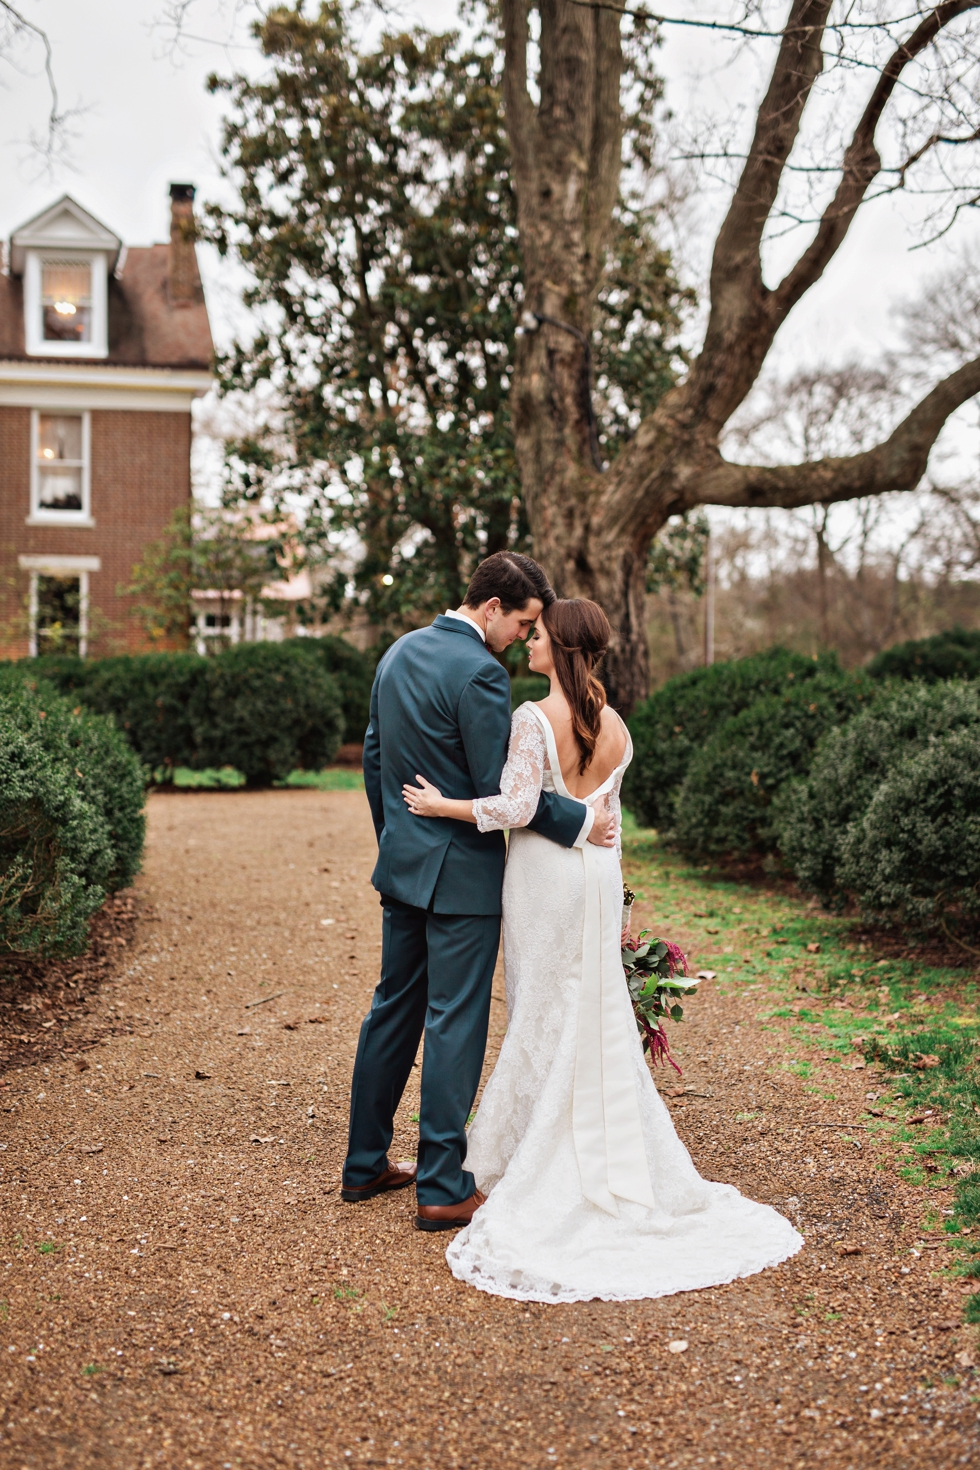 Rustic Wedding at Homestead Manor | Nashville Wedding Photographer